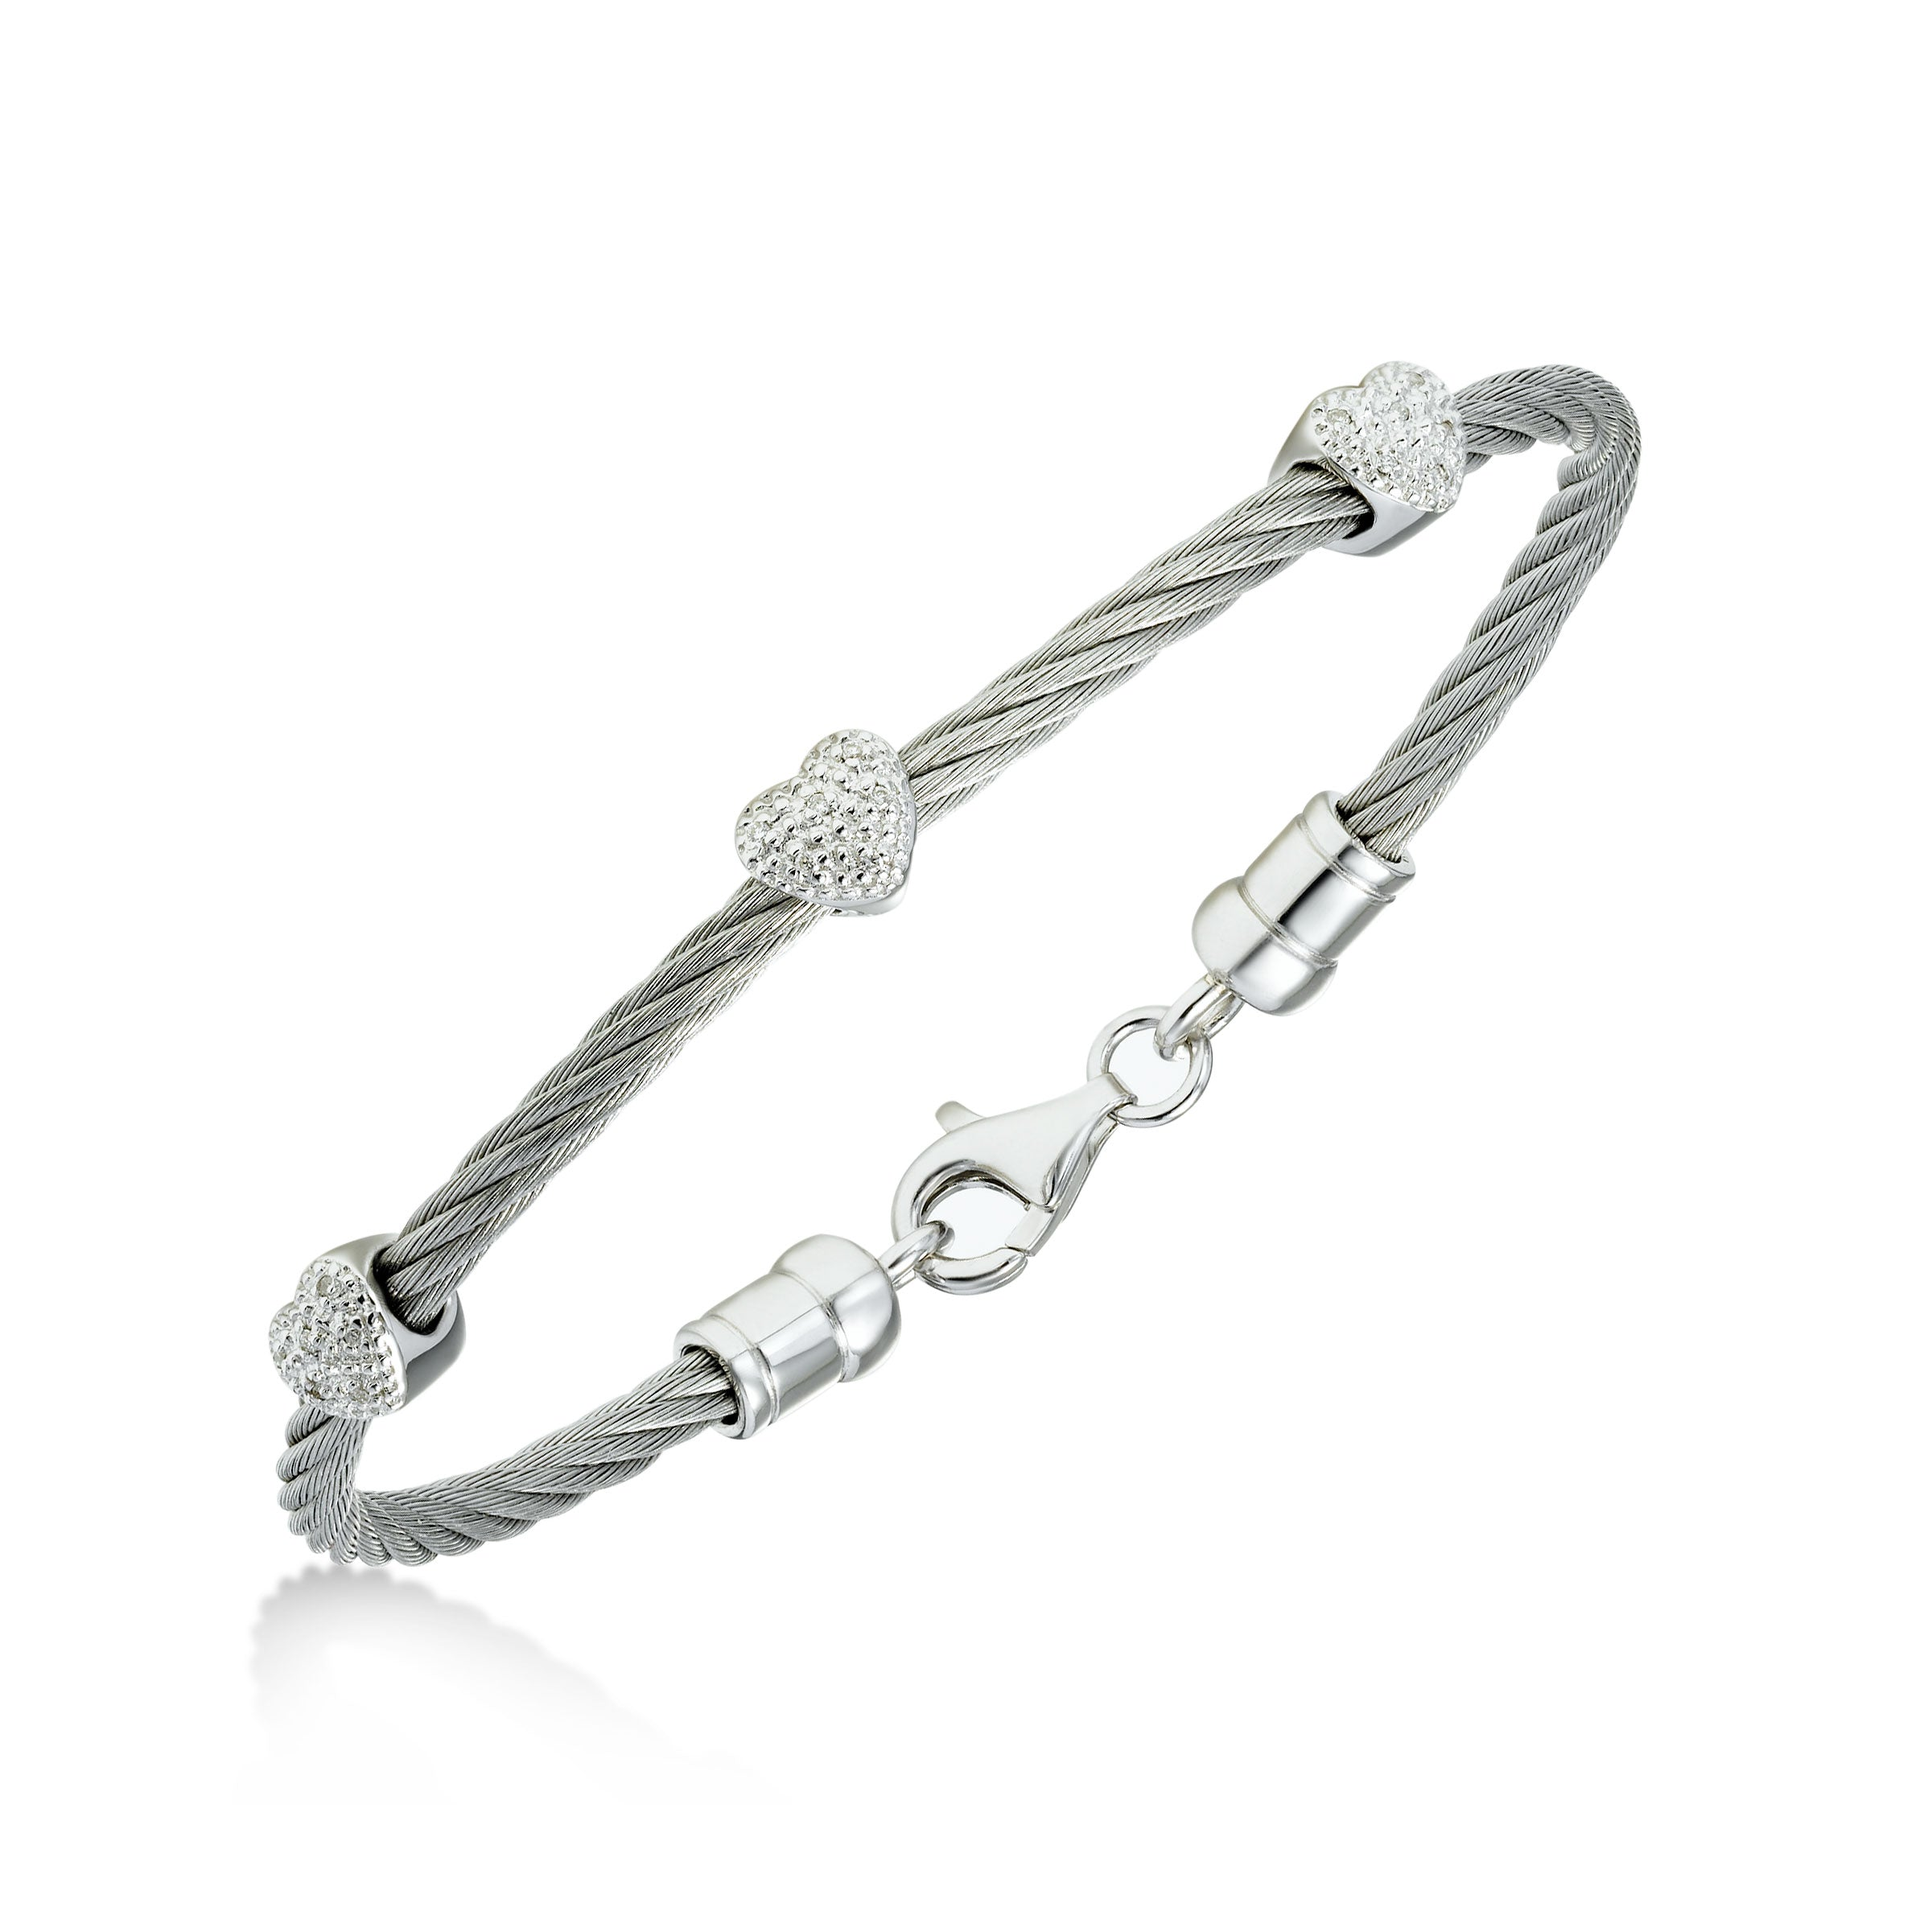 Diamond Cable Bracelet, Steel, Sterling Silver Hearts